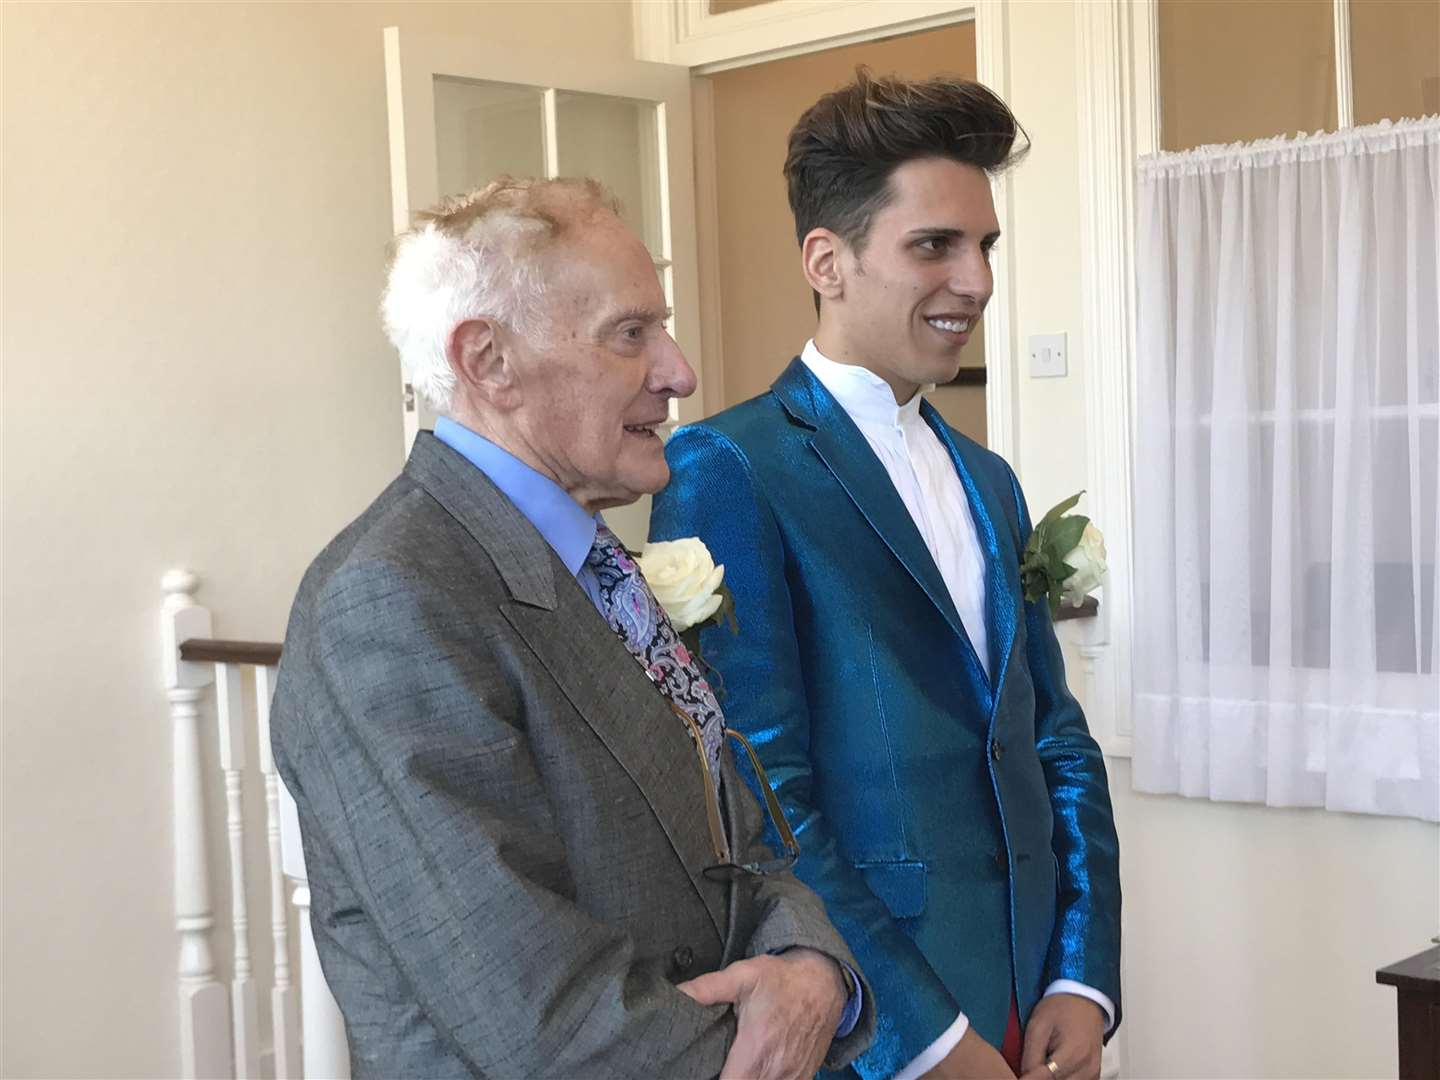 Philip Clements and Florin Marin on their wedding day